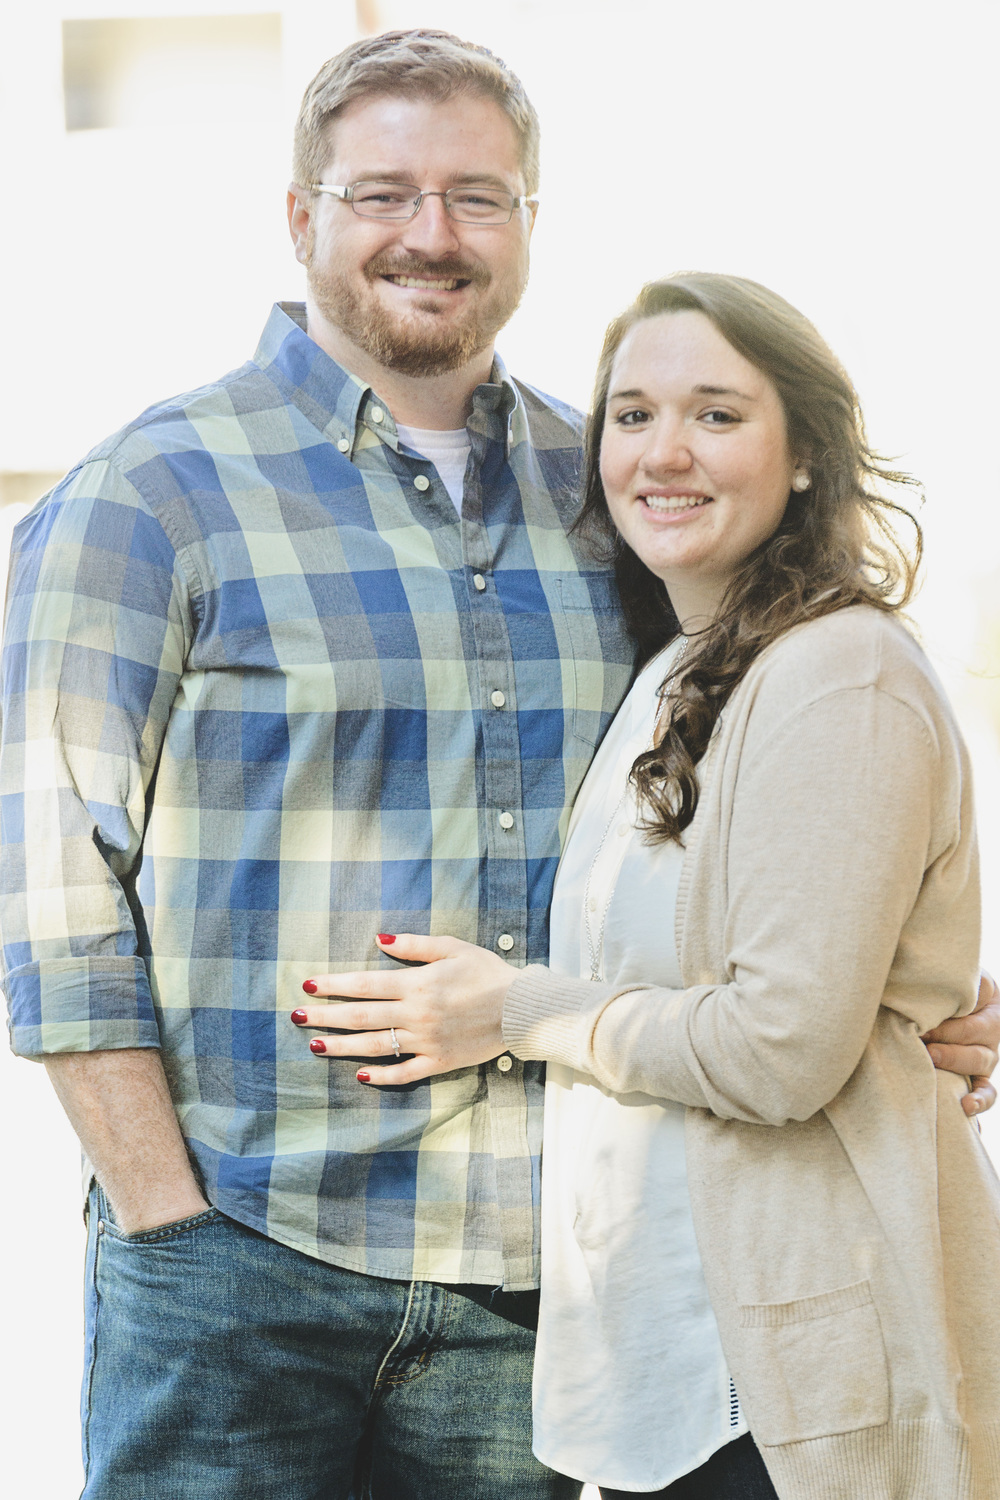 downtown_bookstore_engagement_session_lynchburg_va022.jpg